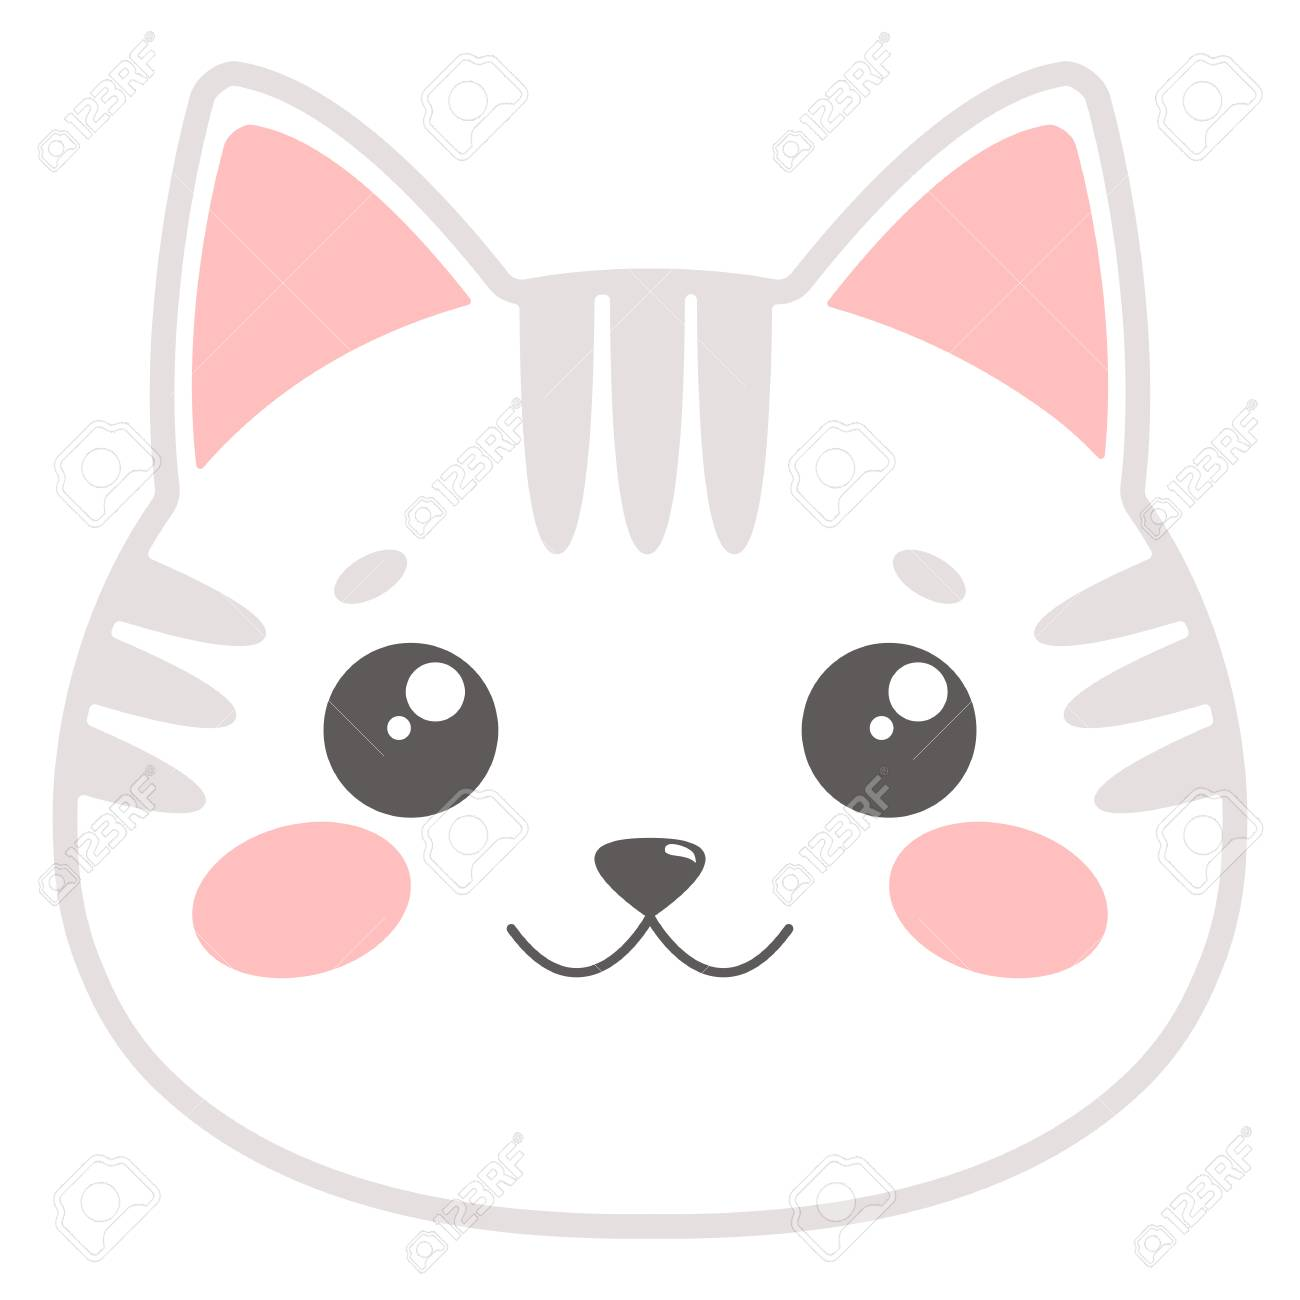 Cute Cat Face Vector Illustration Royalty Free Cliparts Vectors